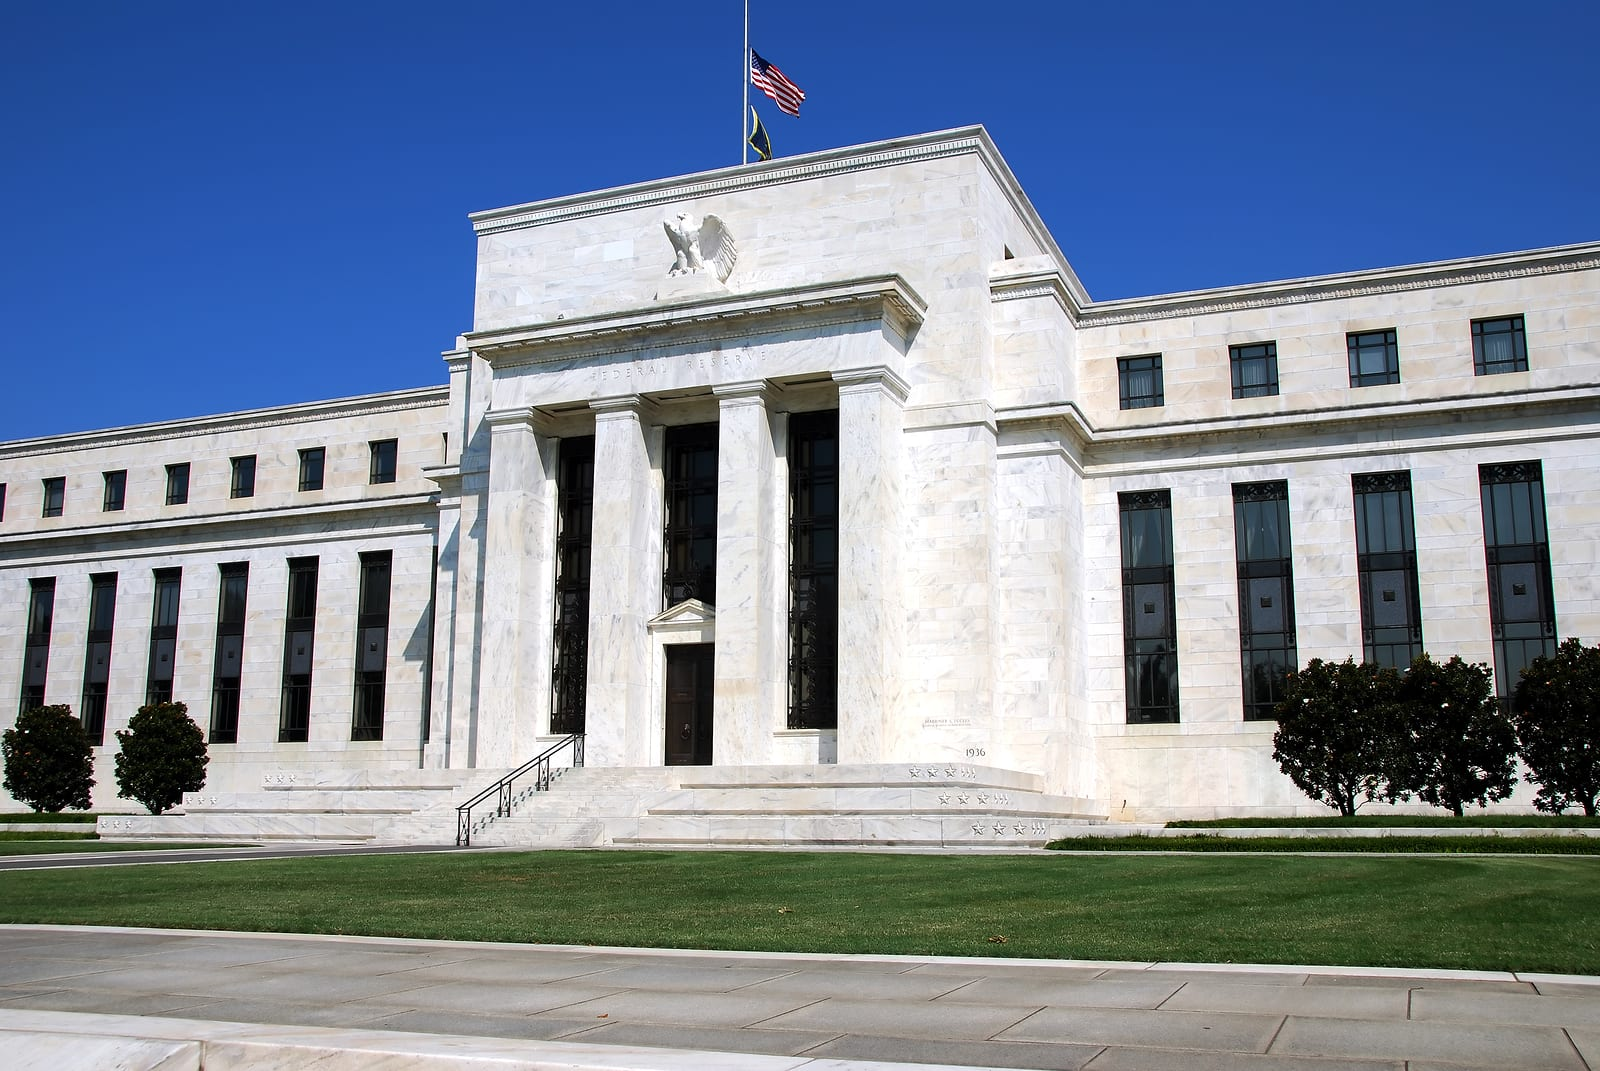 Federal Reserve News: FRB announces members of Fraud Definitions Work Group